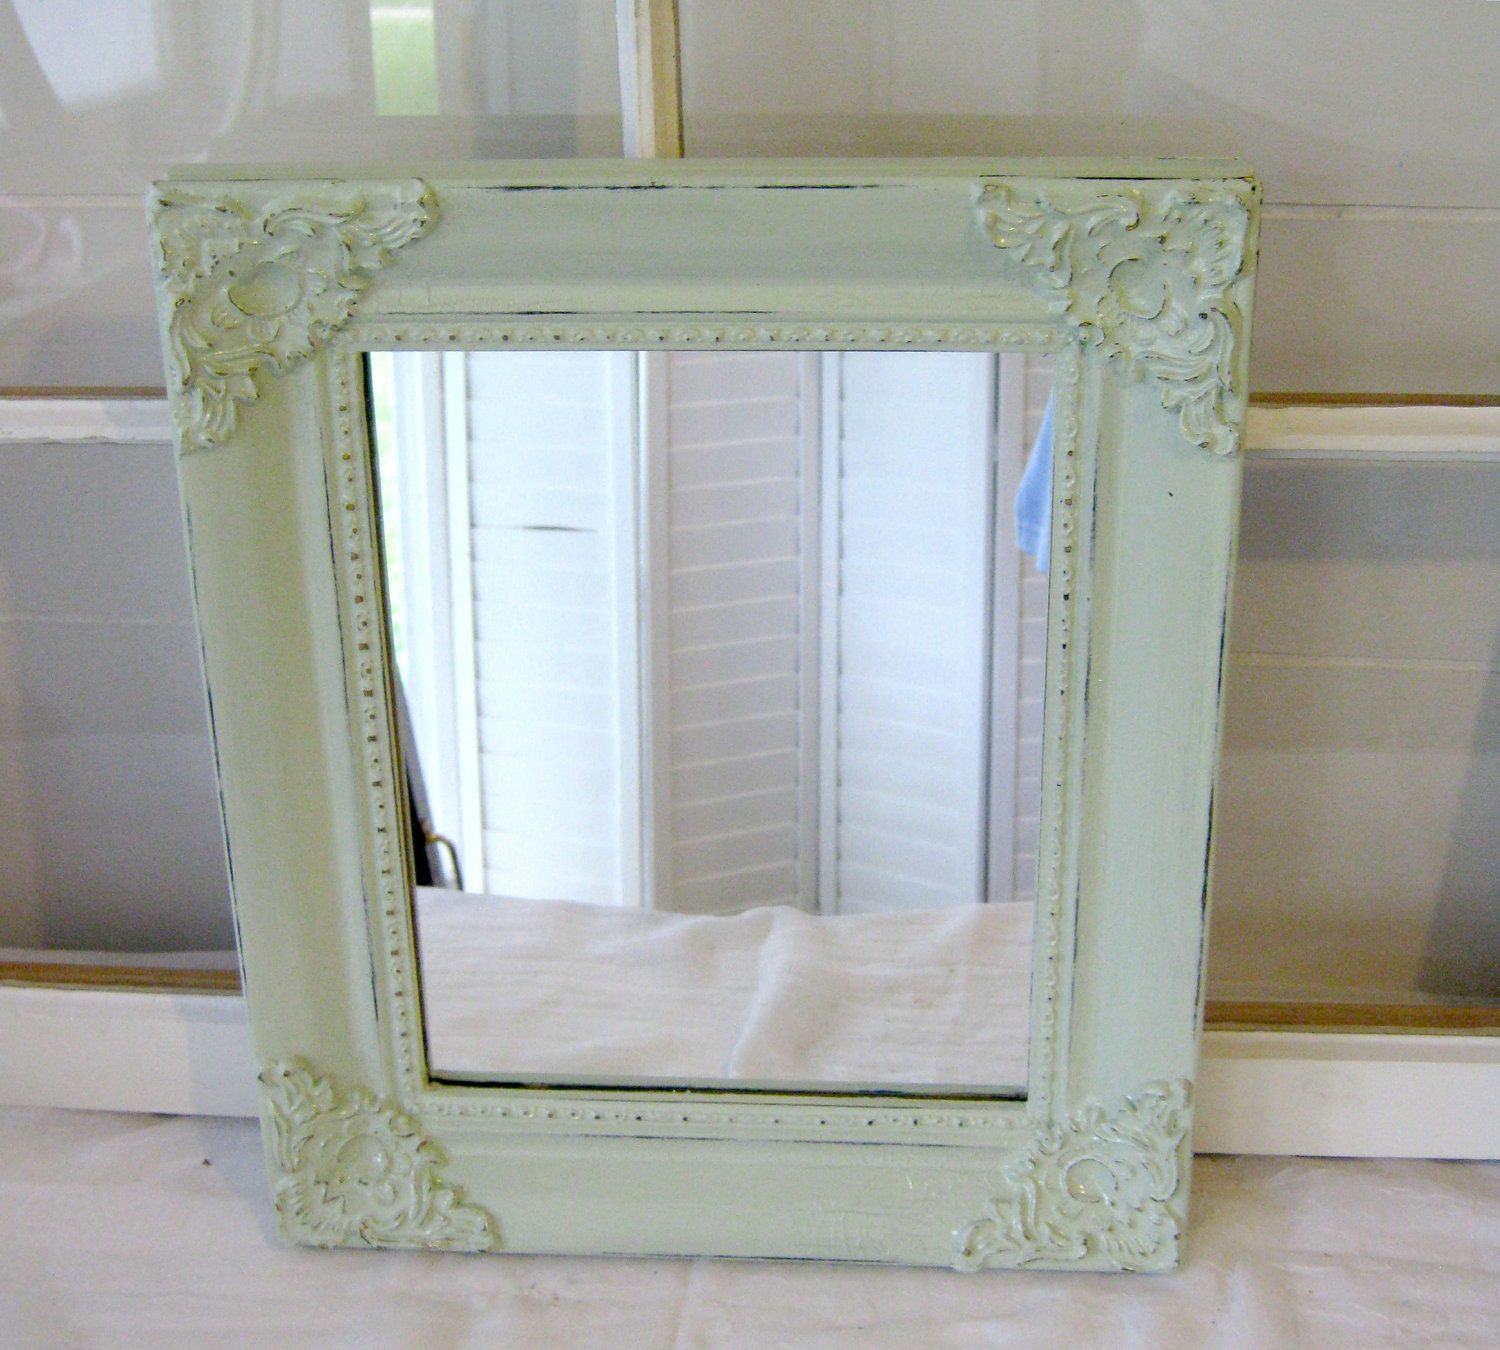 Shabby Chic Antique Mint Ornate Wall Mirror Square Wood Frame Home Decor Paris Apt Romatic Cottage Style